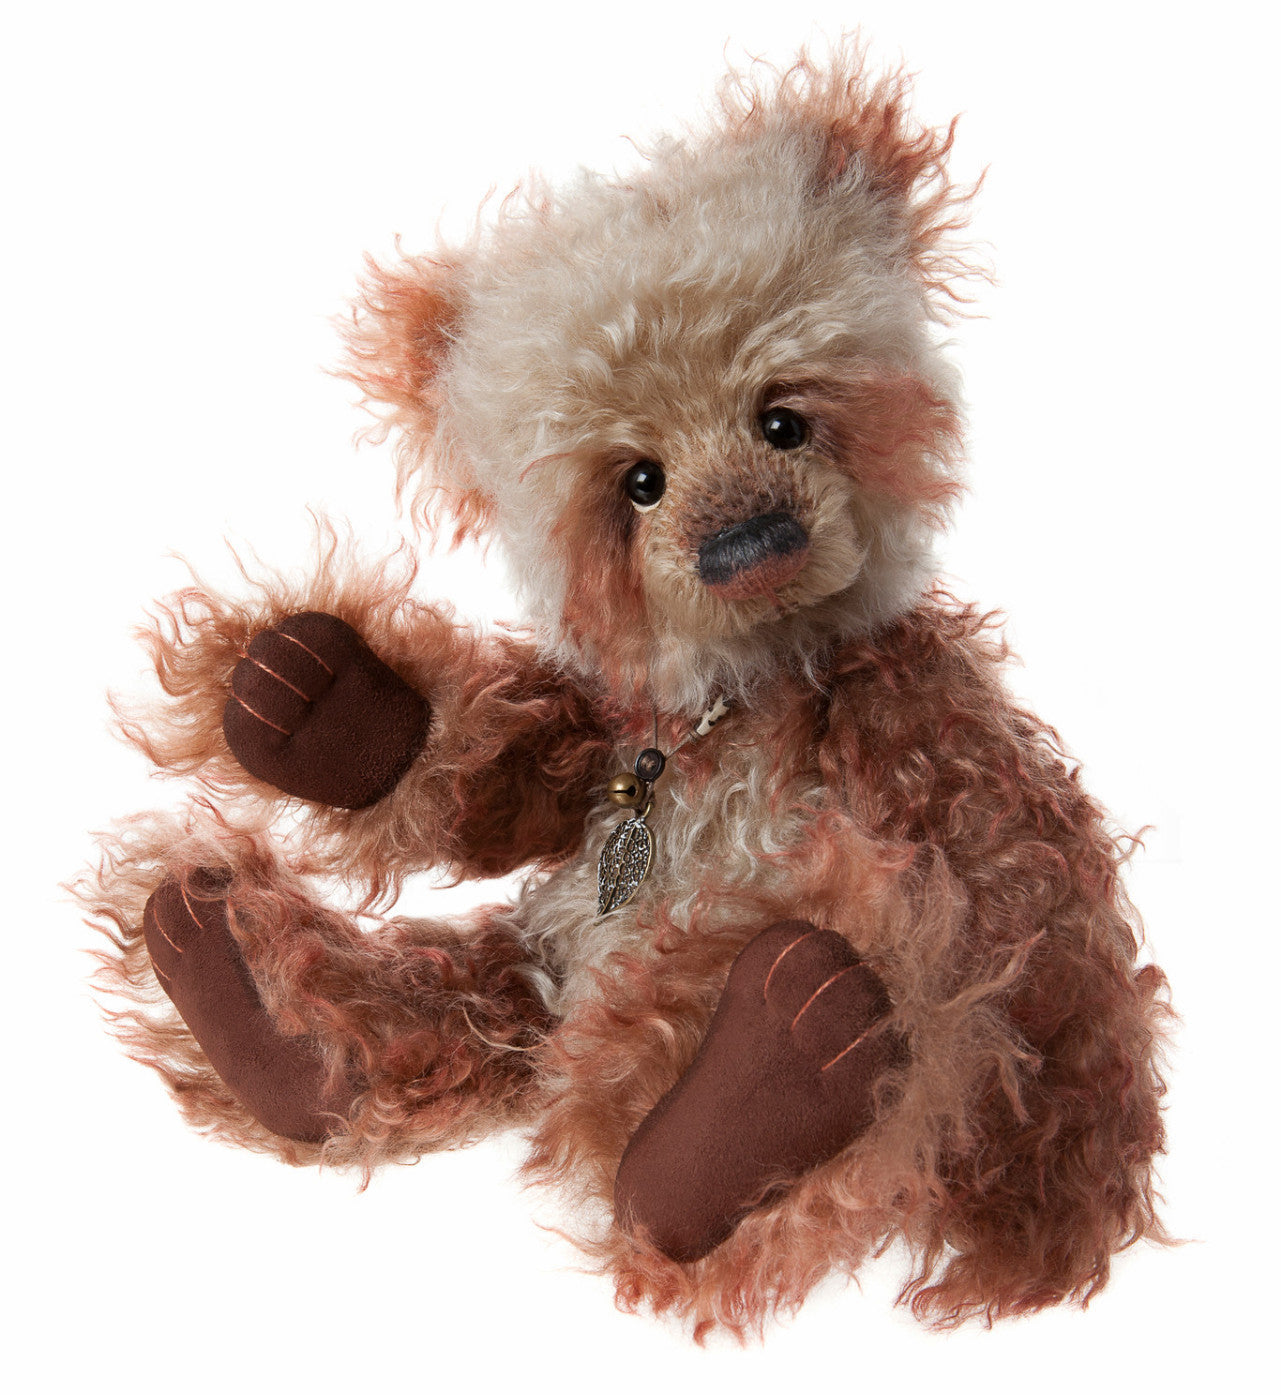 Cagney Bear - Charlie Bears Teddy Bear